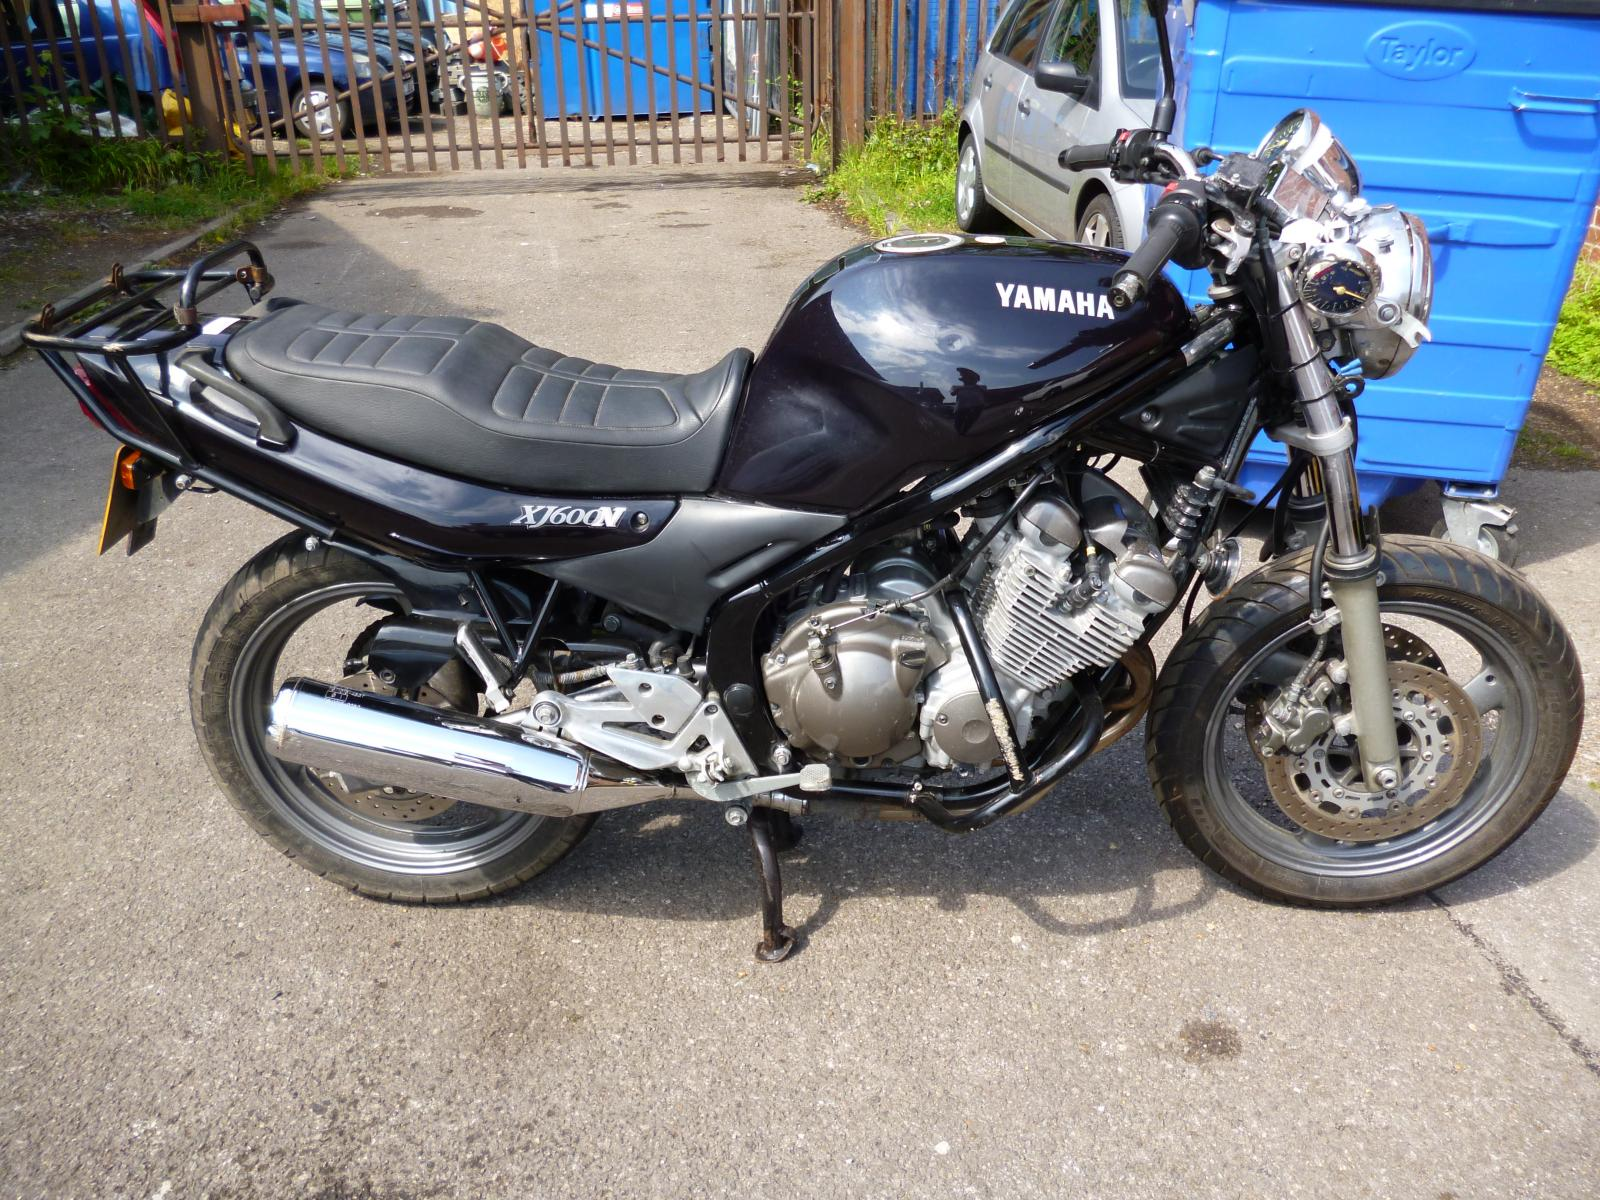 2001 Yamaha XJ 600 S Diversion specifications and pictures